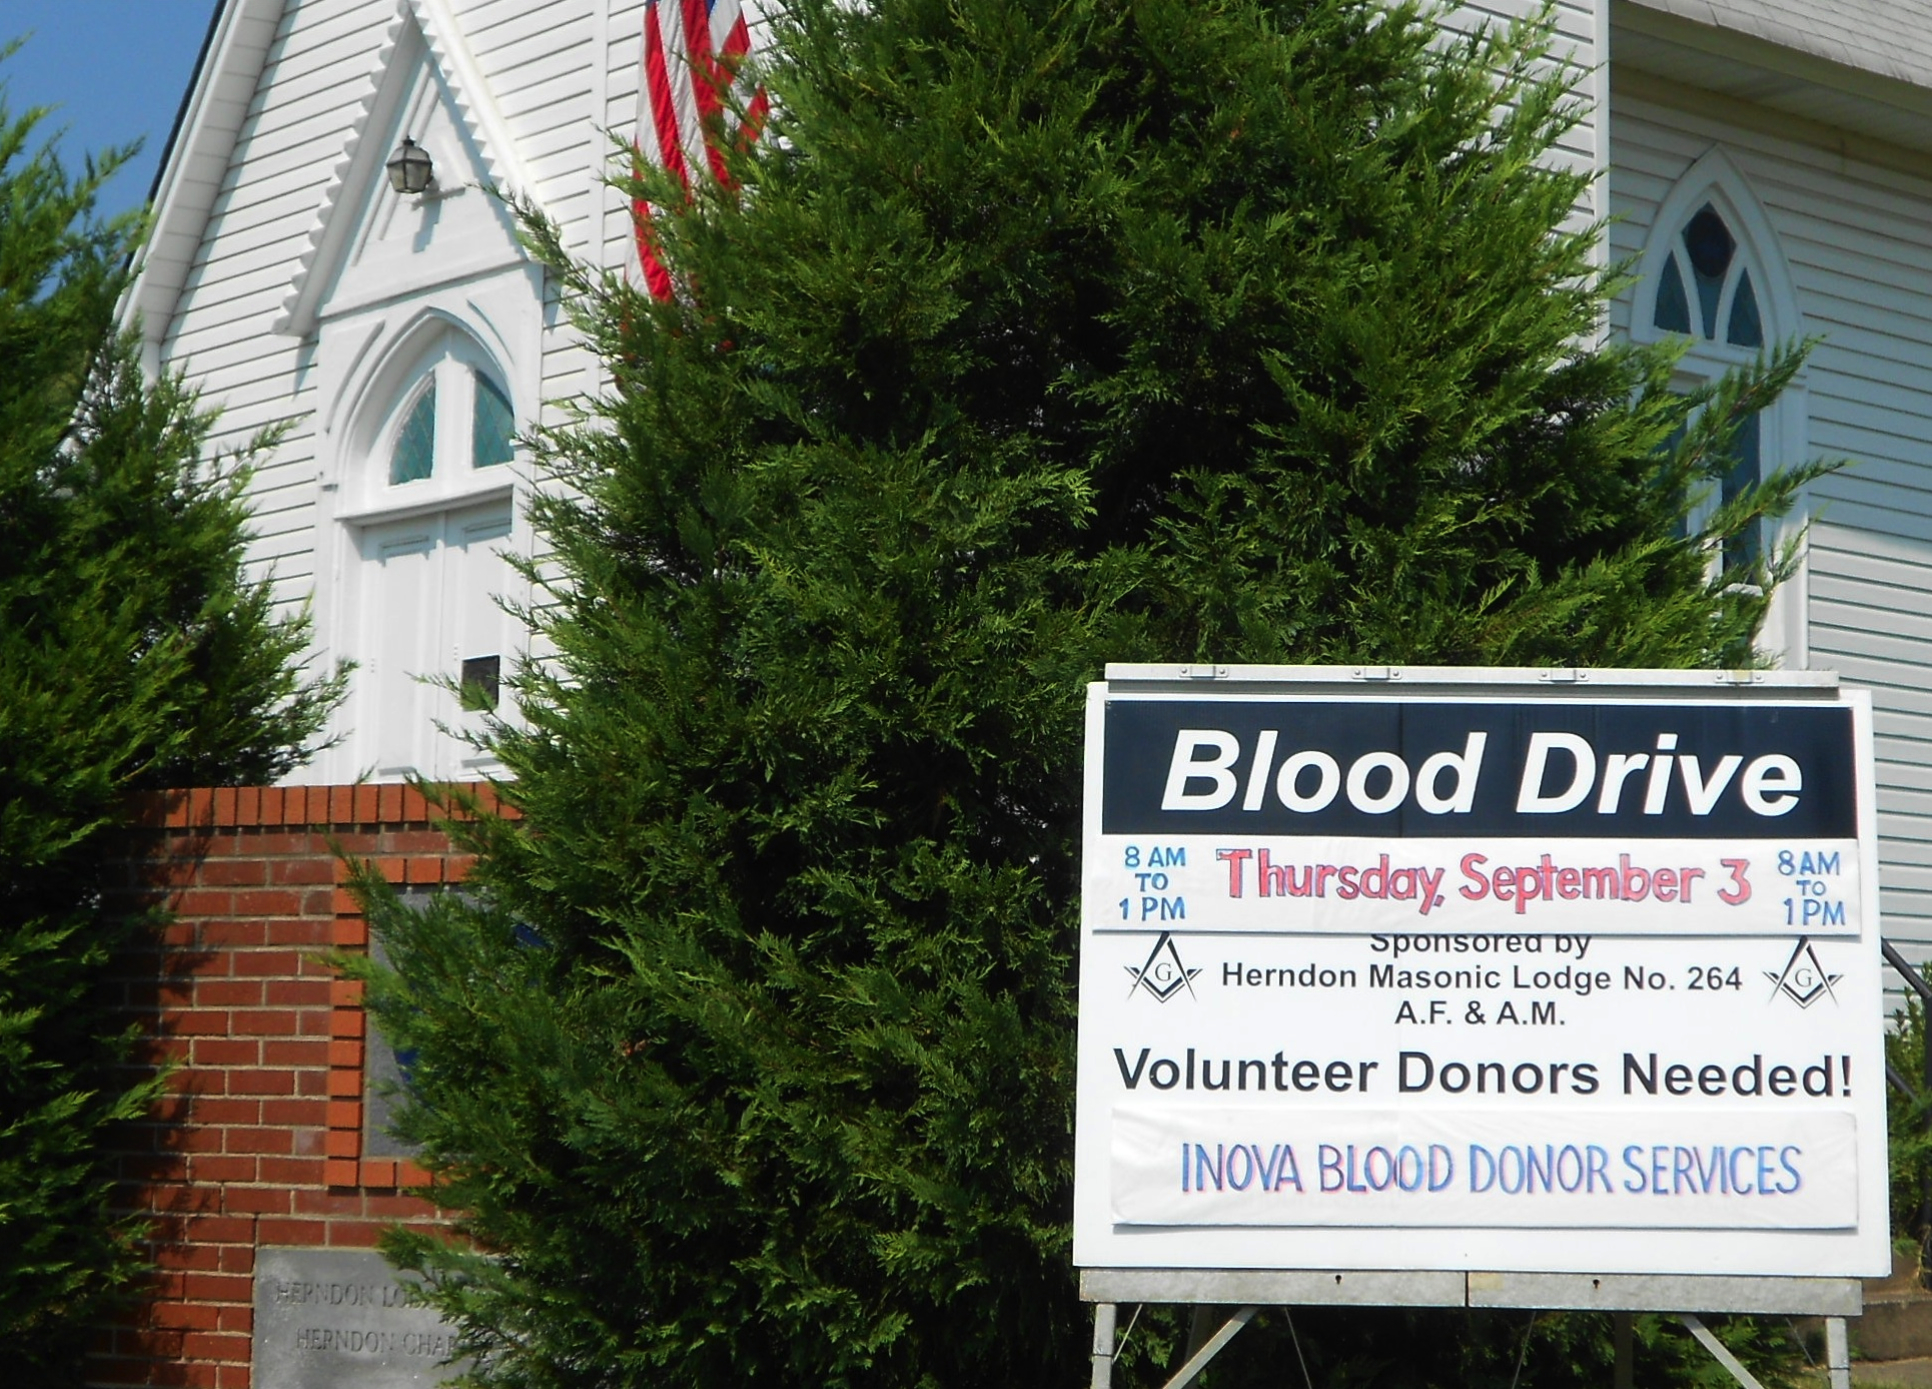 HEALTH SERVICES AND BLOOD DONOR PROGRAM